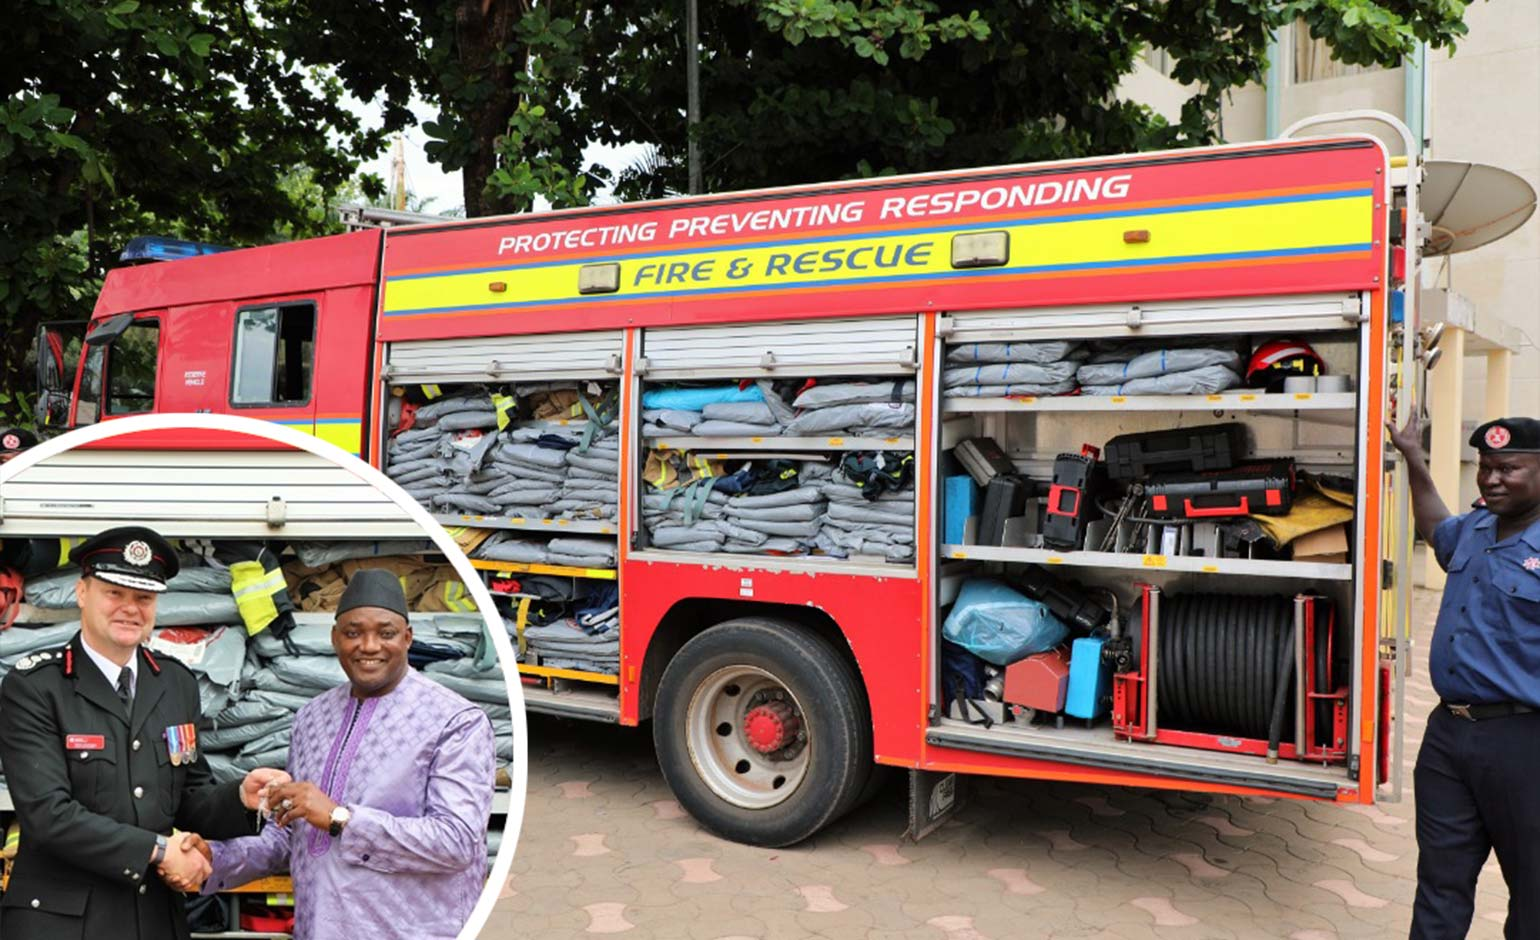 Avon Fire & Rescue Service delivers three trucks and equipment to Gambia | Bath Echo